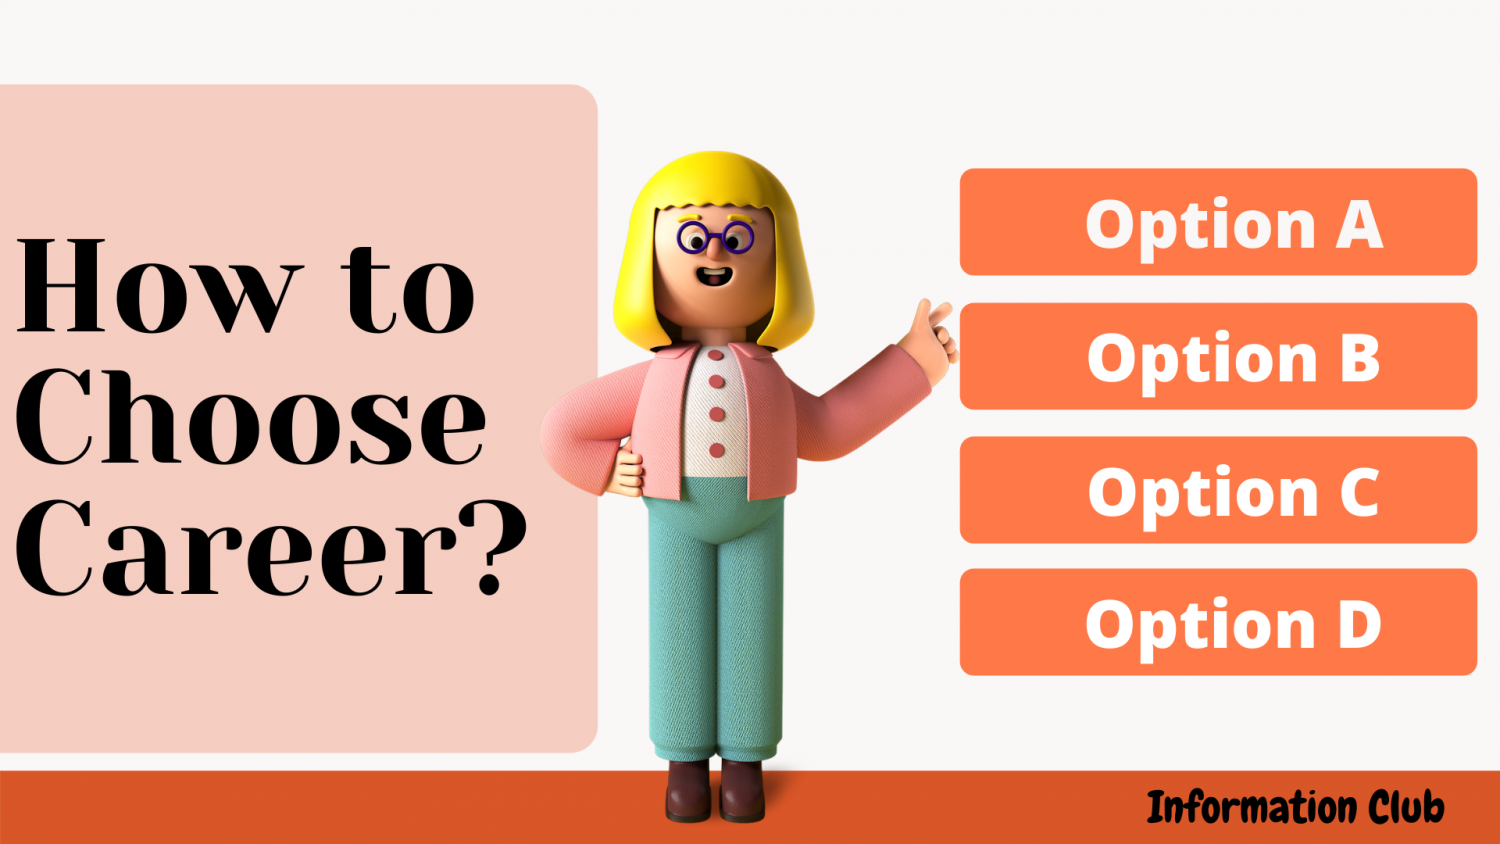 https://www.clubinfonline.com/2020/12/21/how-to-choose-career-by-answering-5-simple-question/